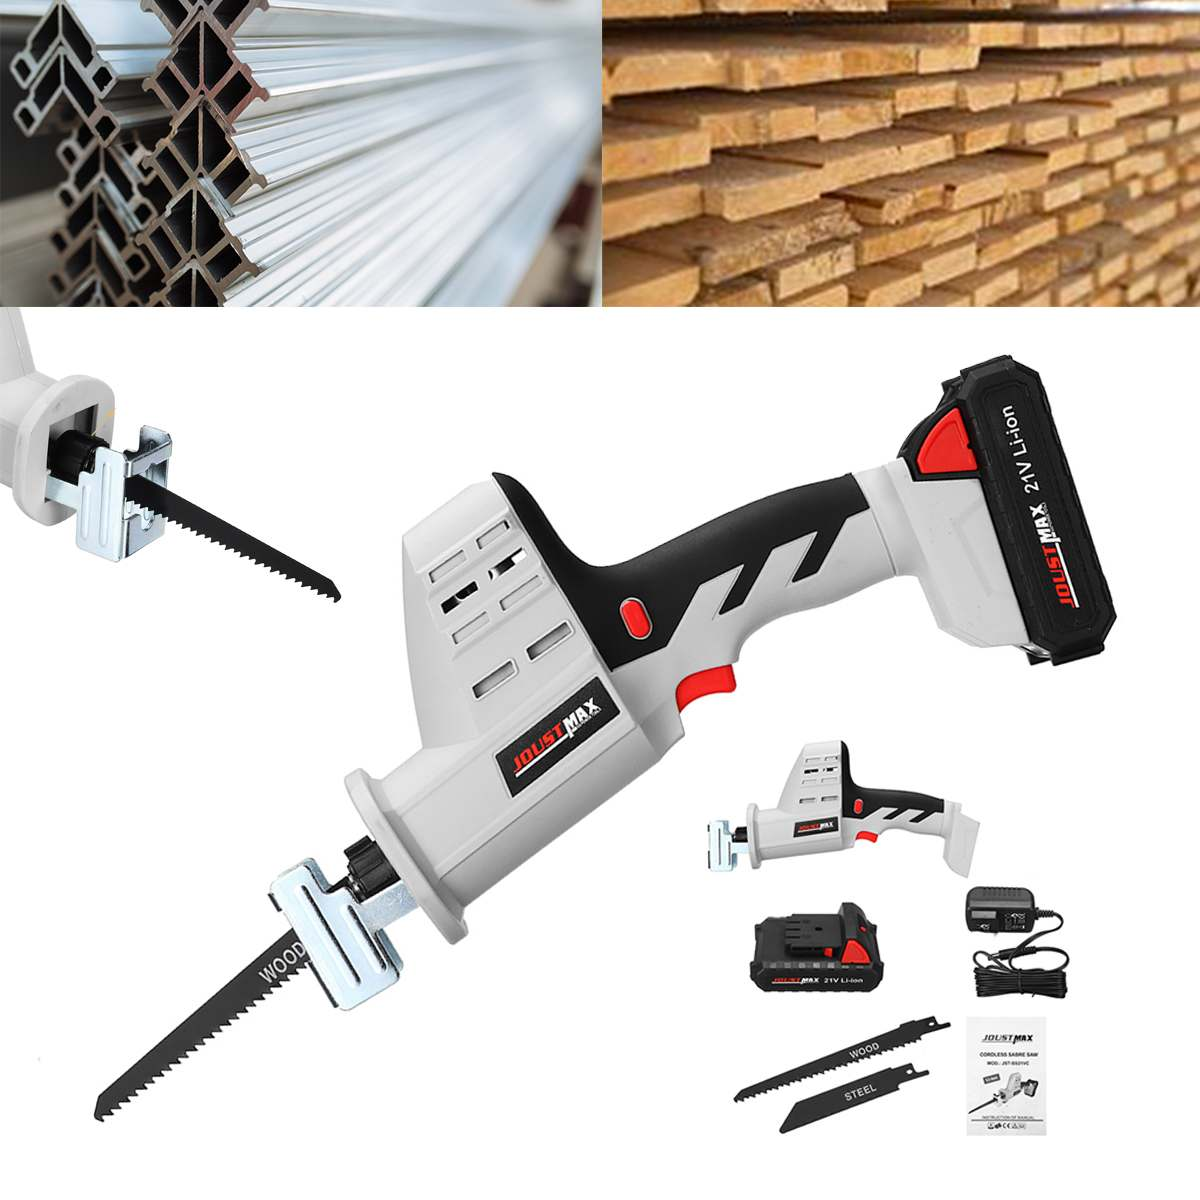 21V Cordless Reciprocating Saw Kit Portable Electric Saw Blades Metal Wood Angle Cutting Woodworking Tool with Li Ion Battery